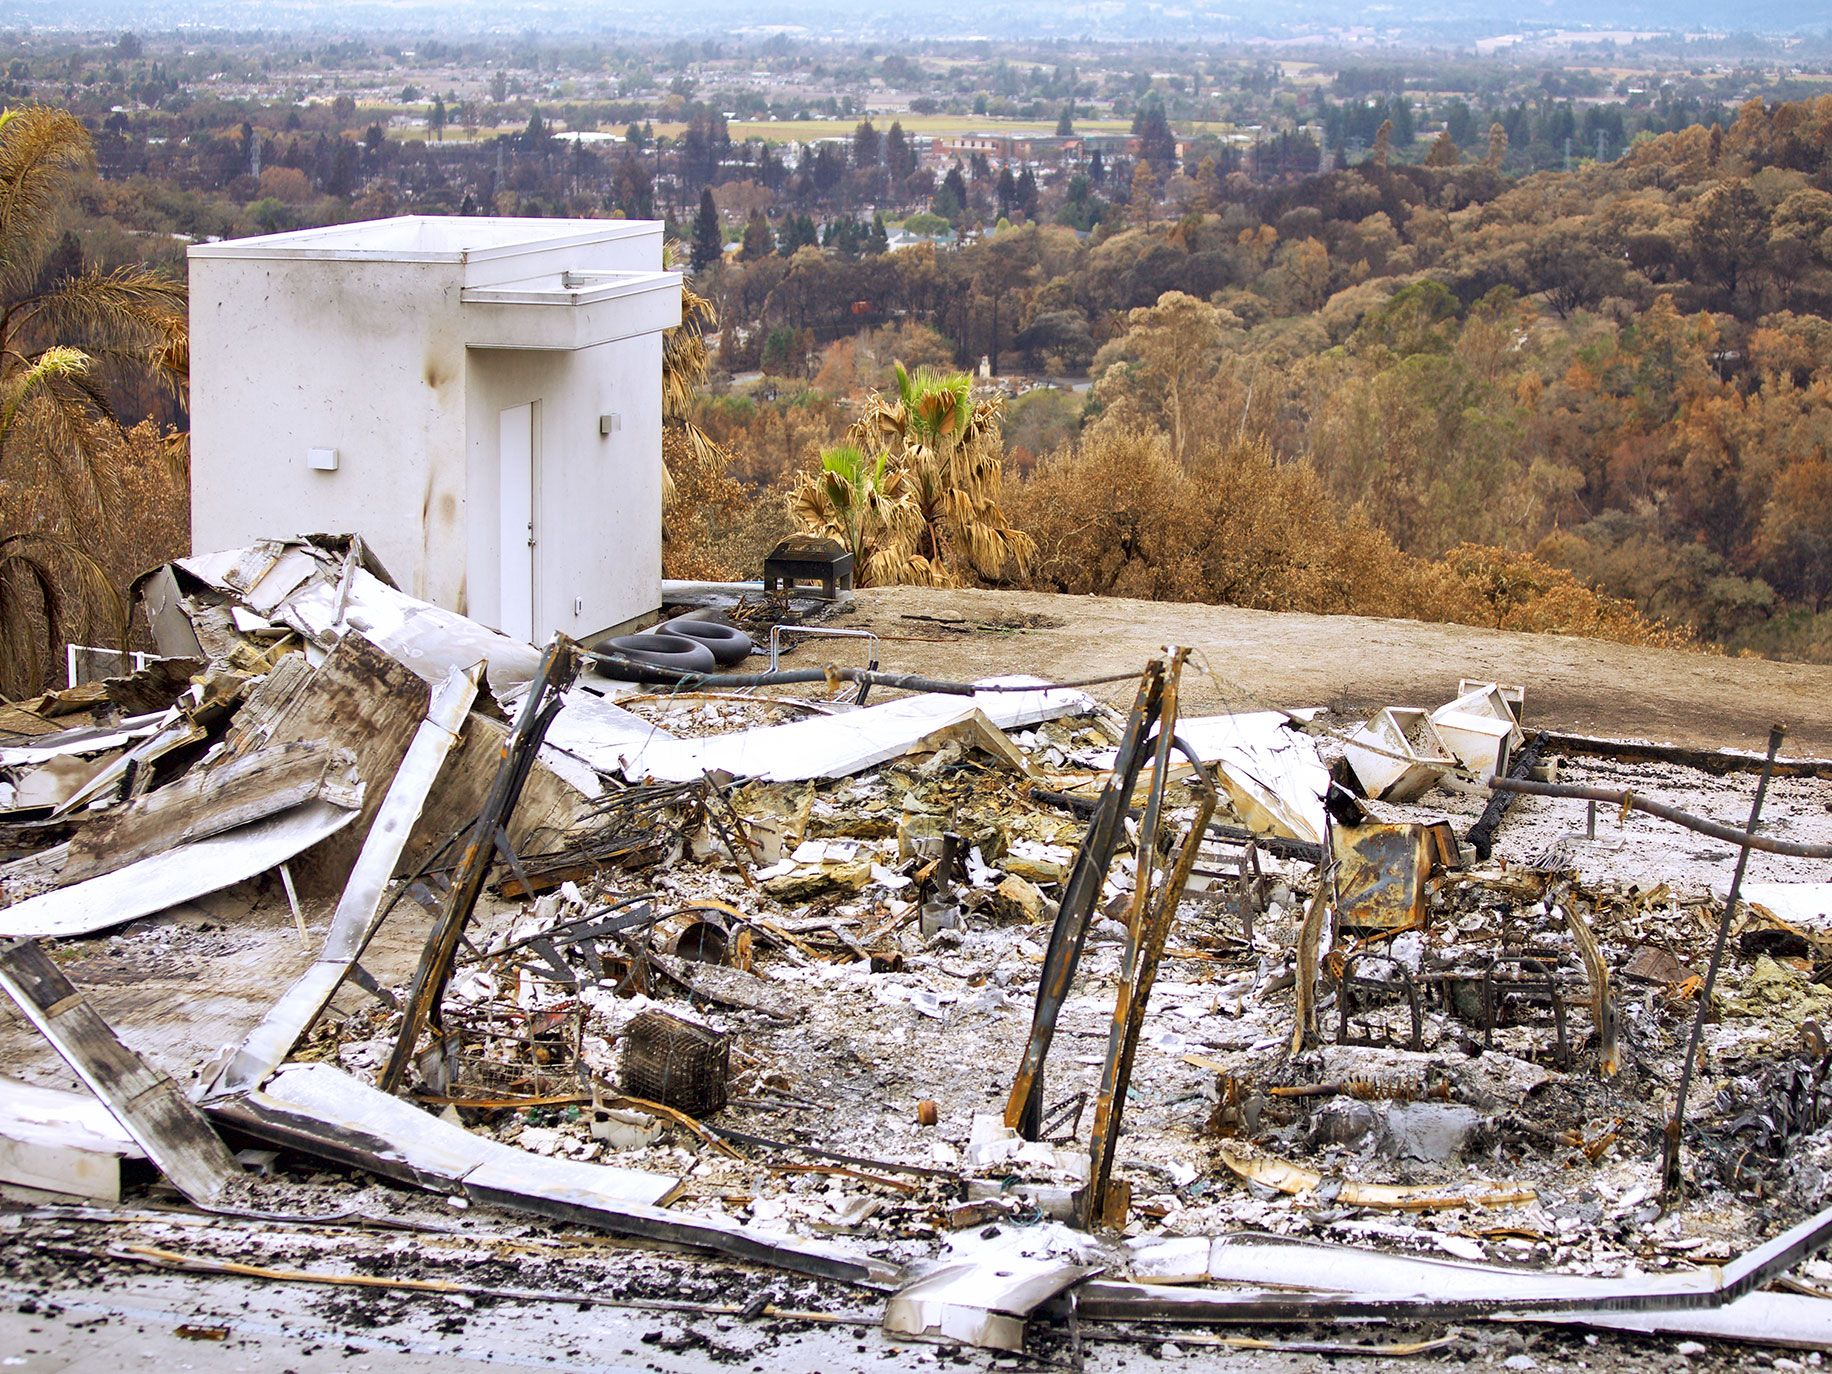 The wreckage of Lars and Ulla Tandrup's dream home near Santa Rosa, a month after it was destroyed in the Tubbs Fire.